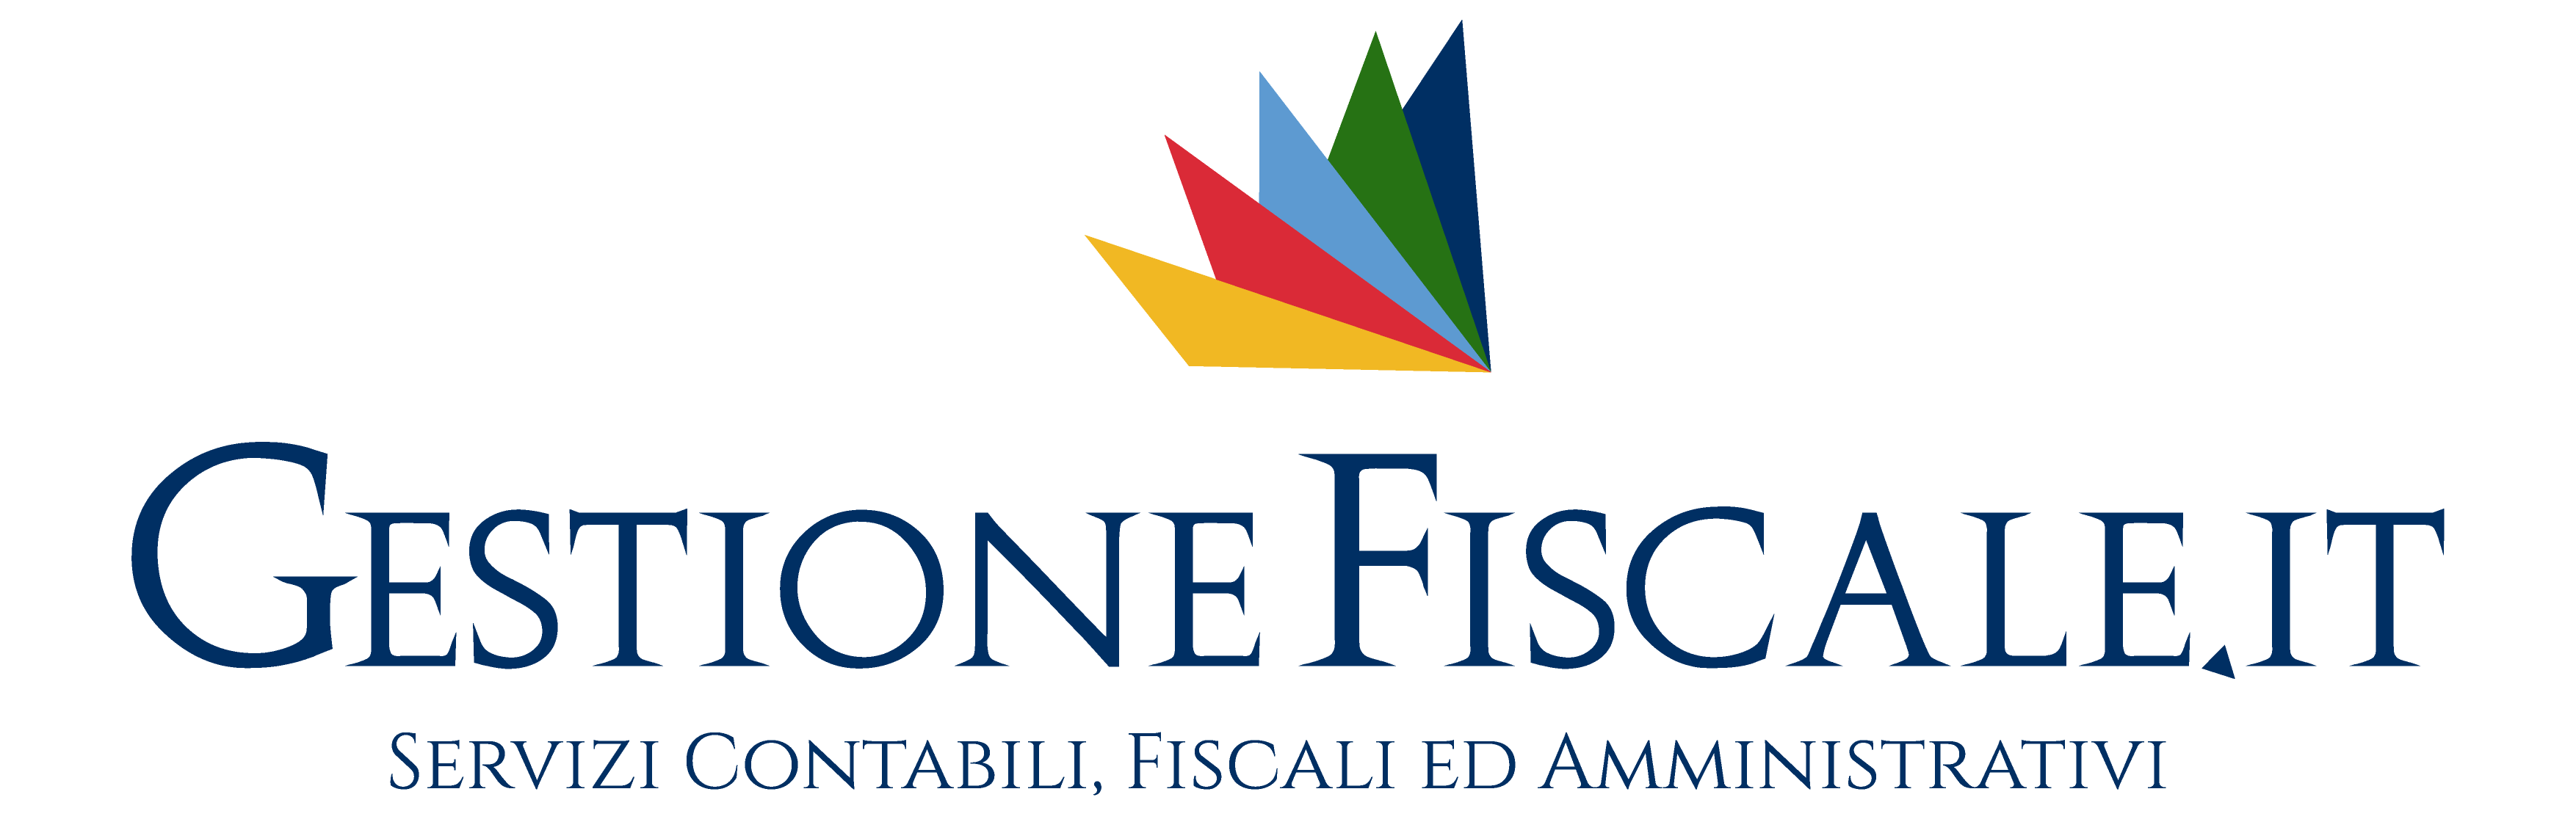 Gestione Fiscale